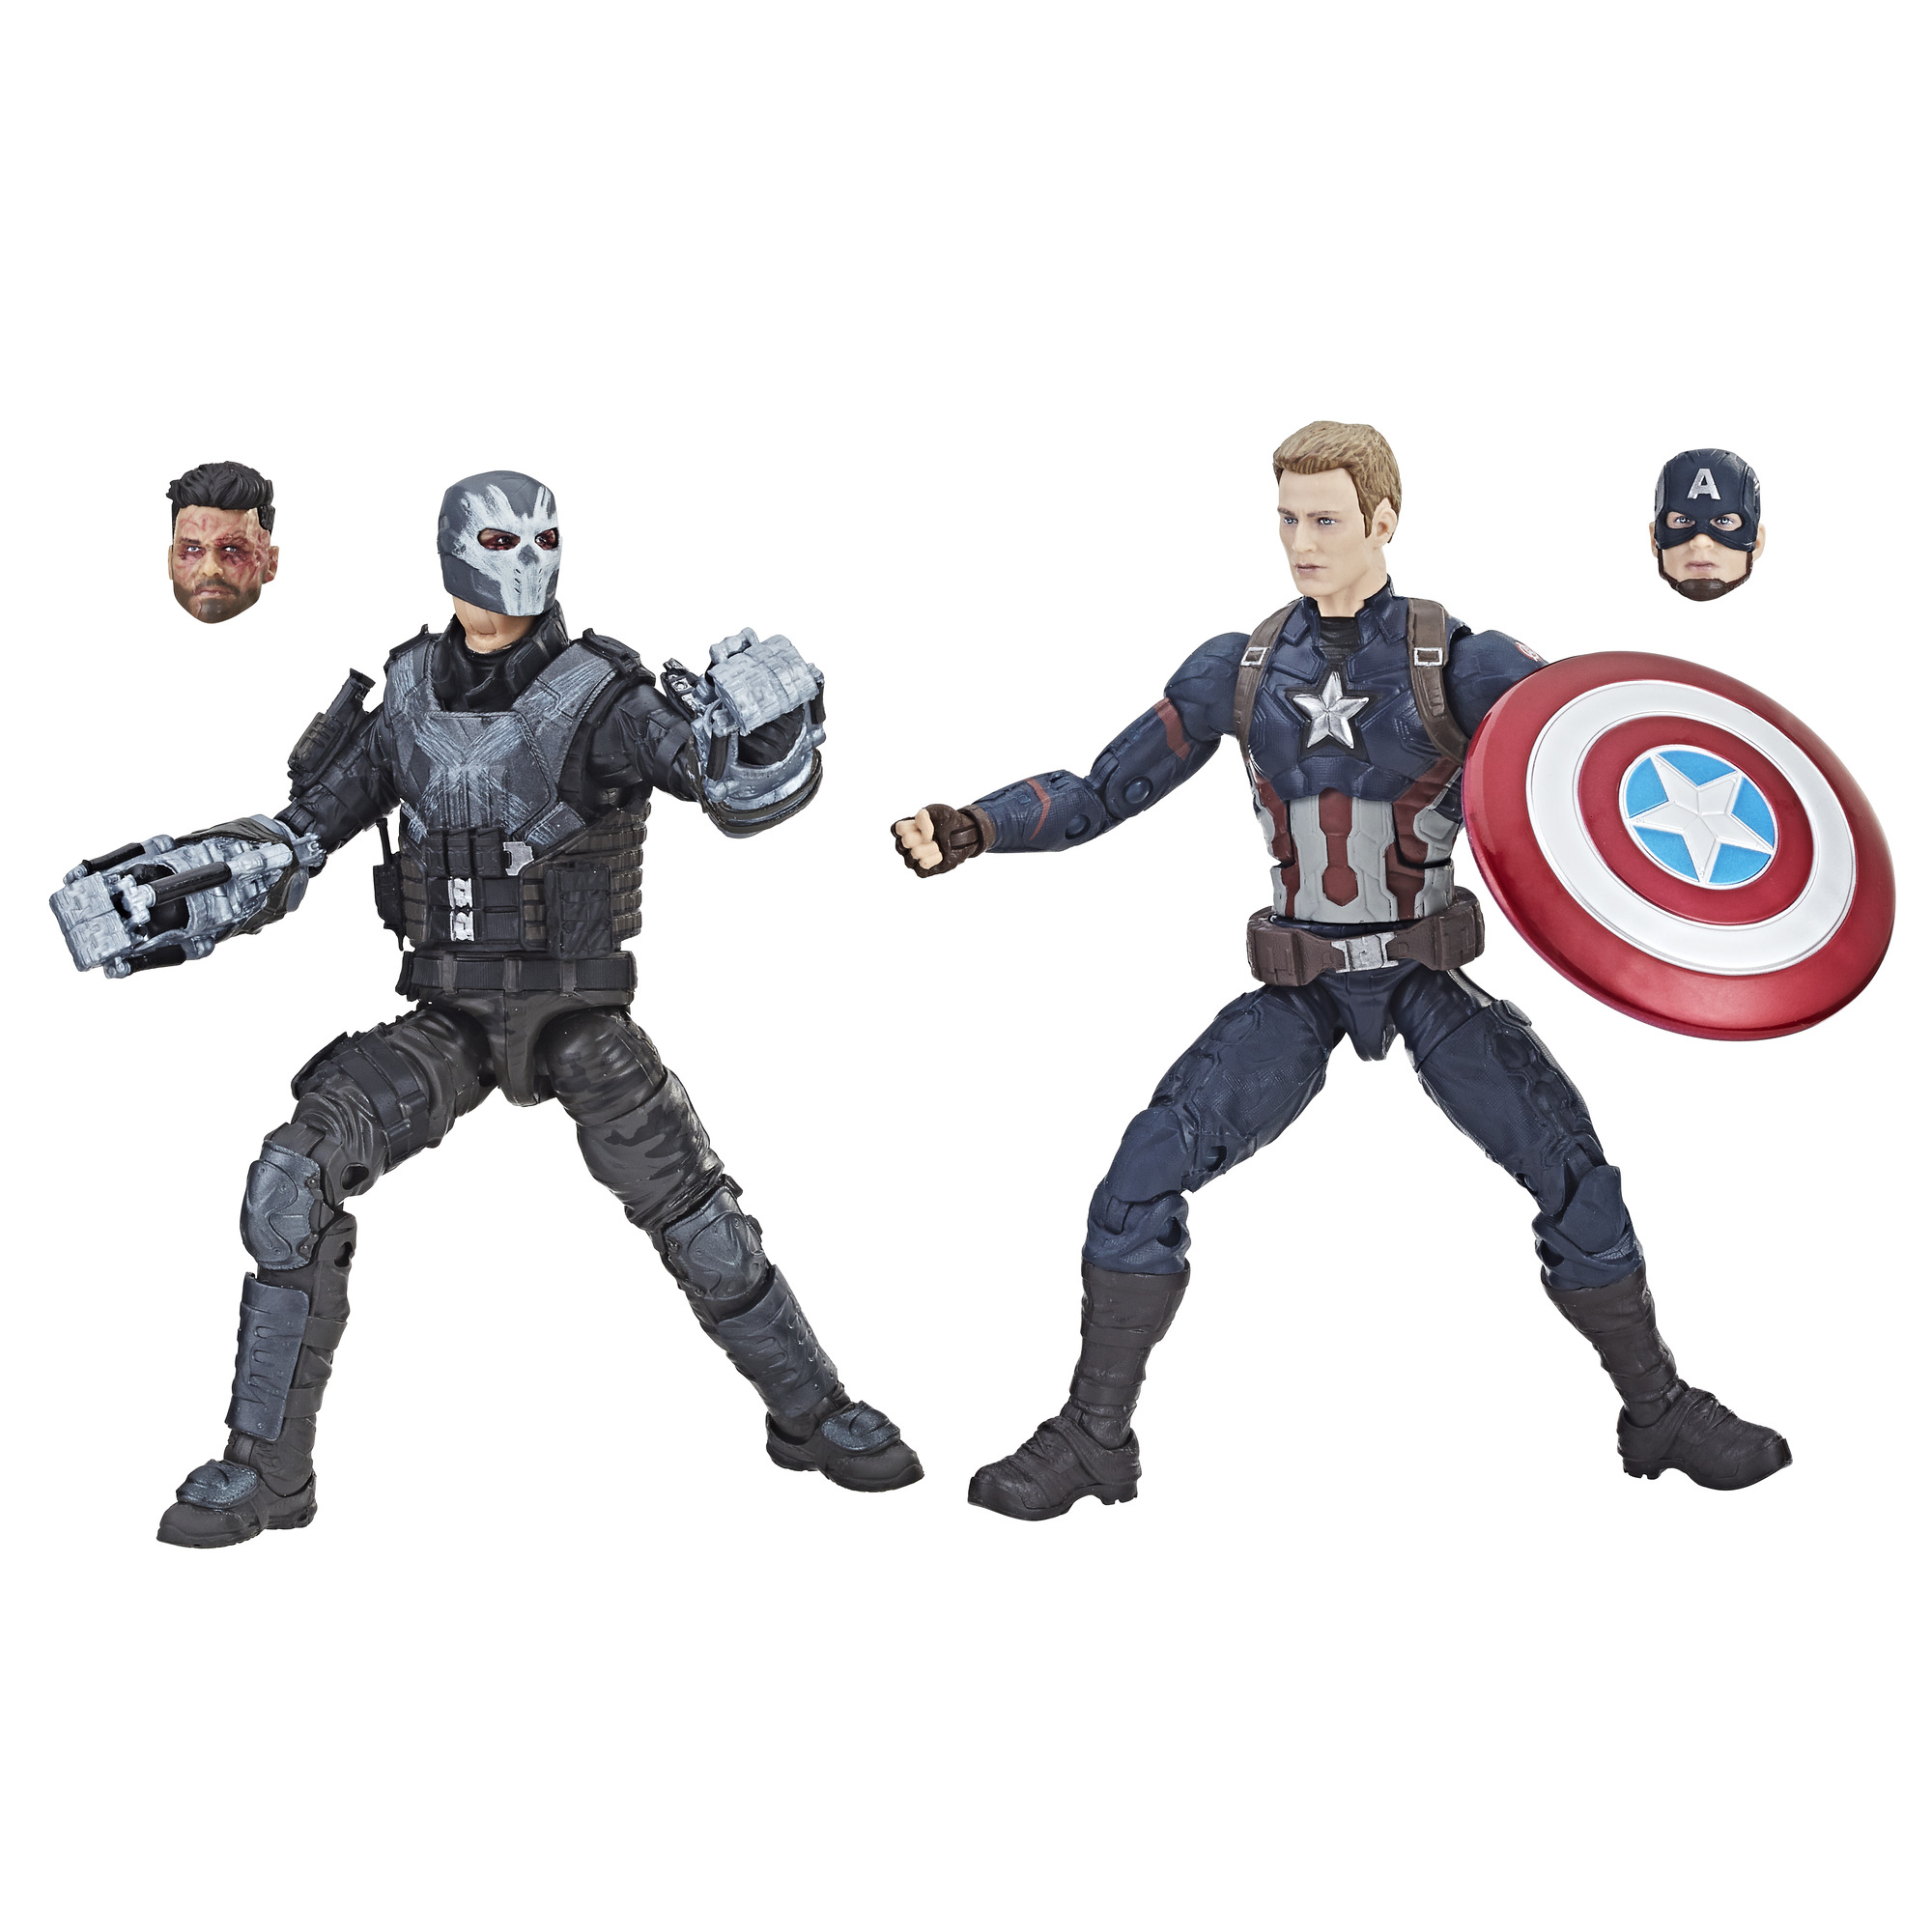 Marvel Studios: The First Ten Years Captain America: Civil War Captain America And Crossbones by Marvel